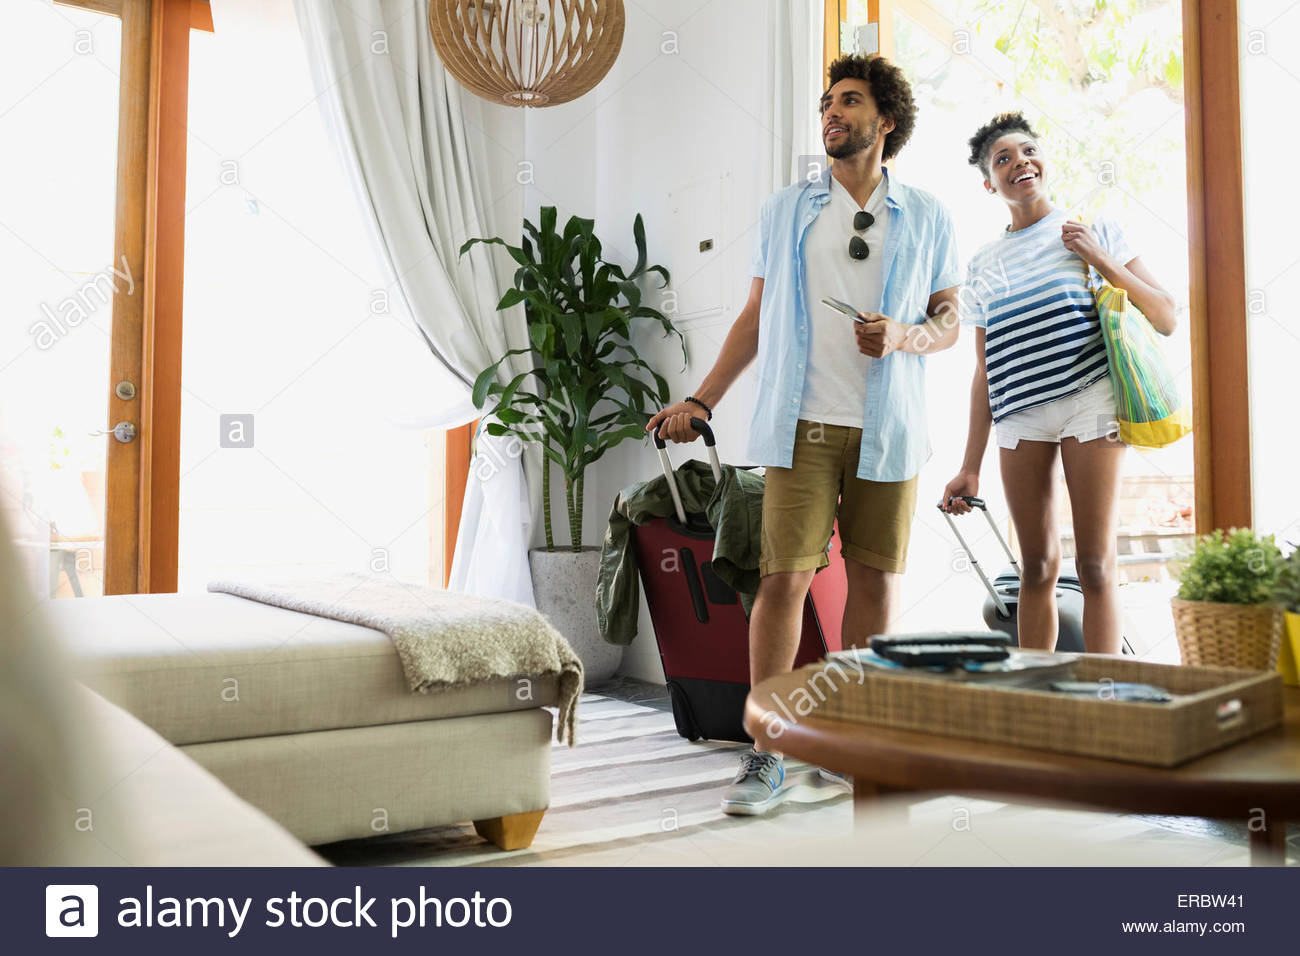 Couple with suitcases arriving at vacation house - Stock Image